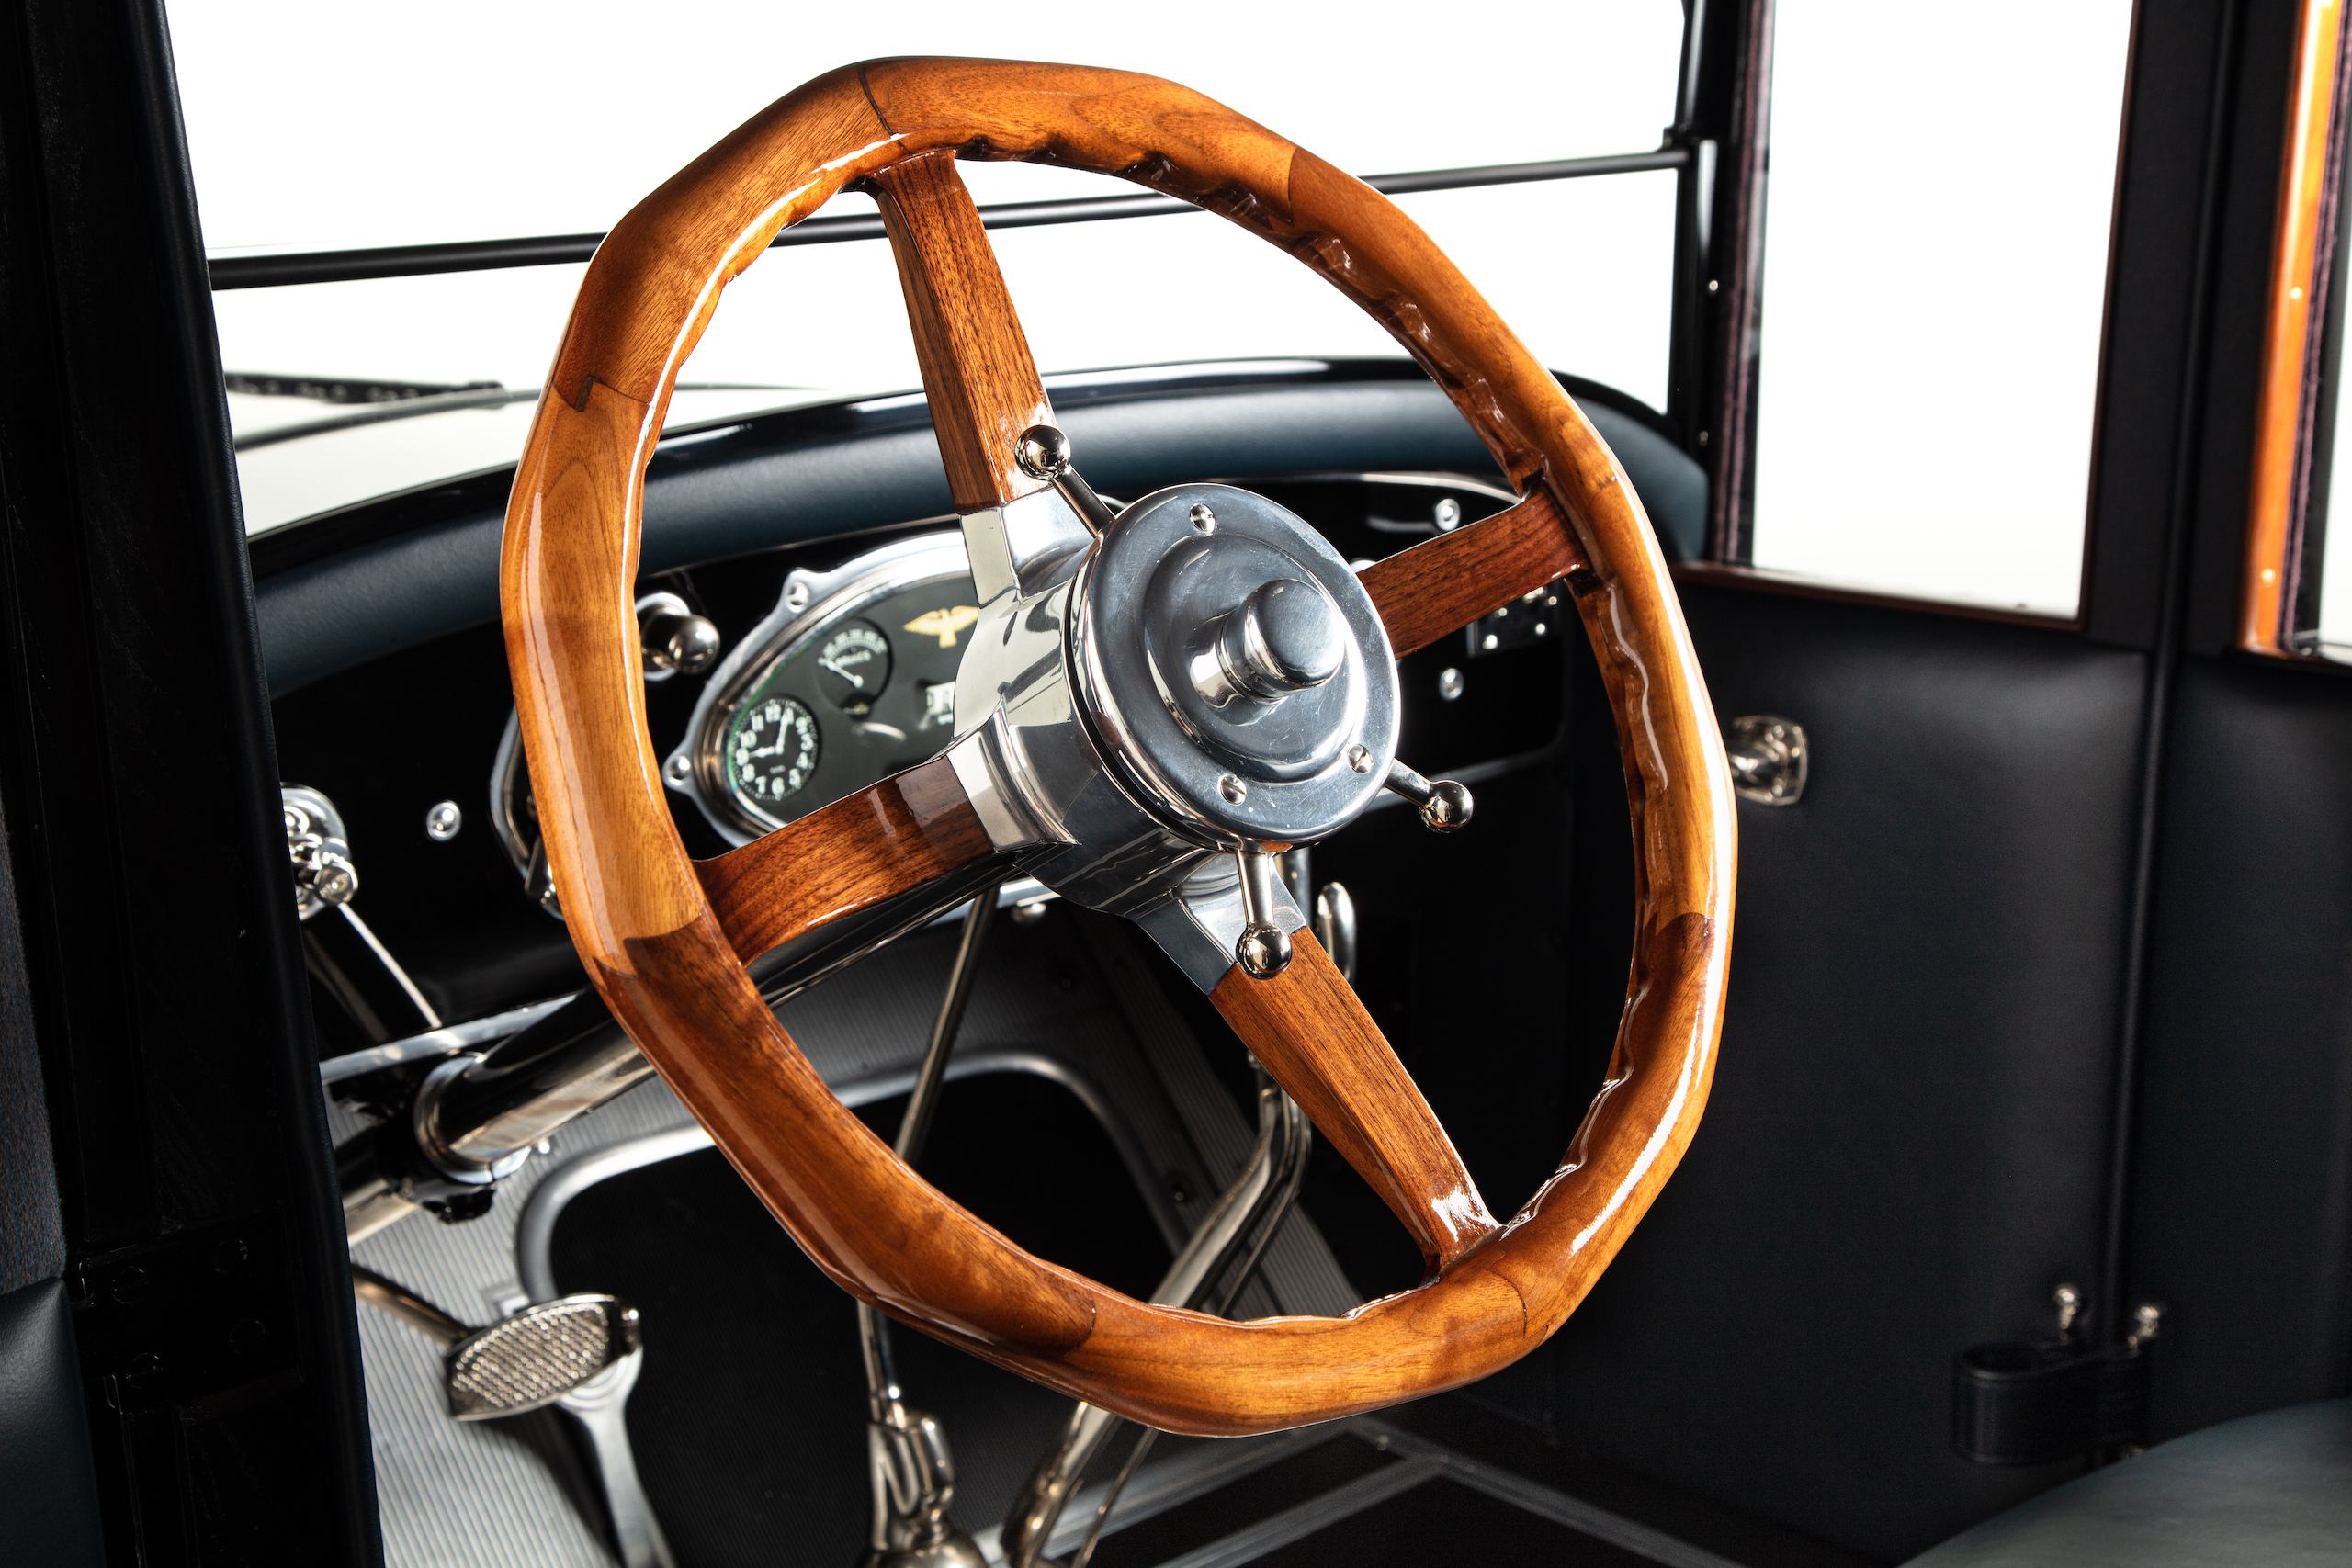 Duesenberg model A wooden steering wheel detail